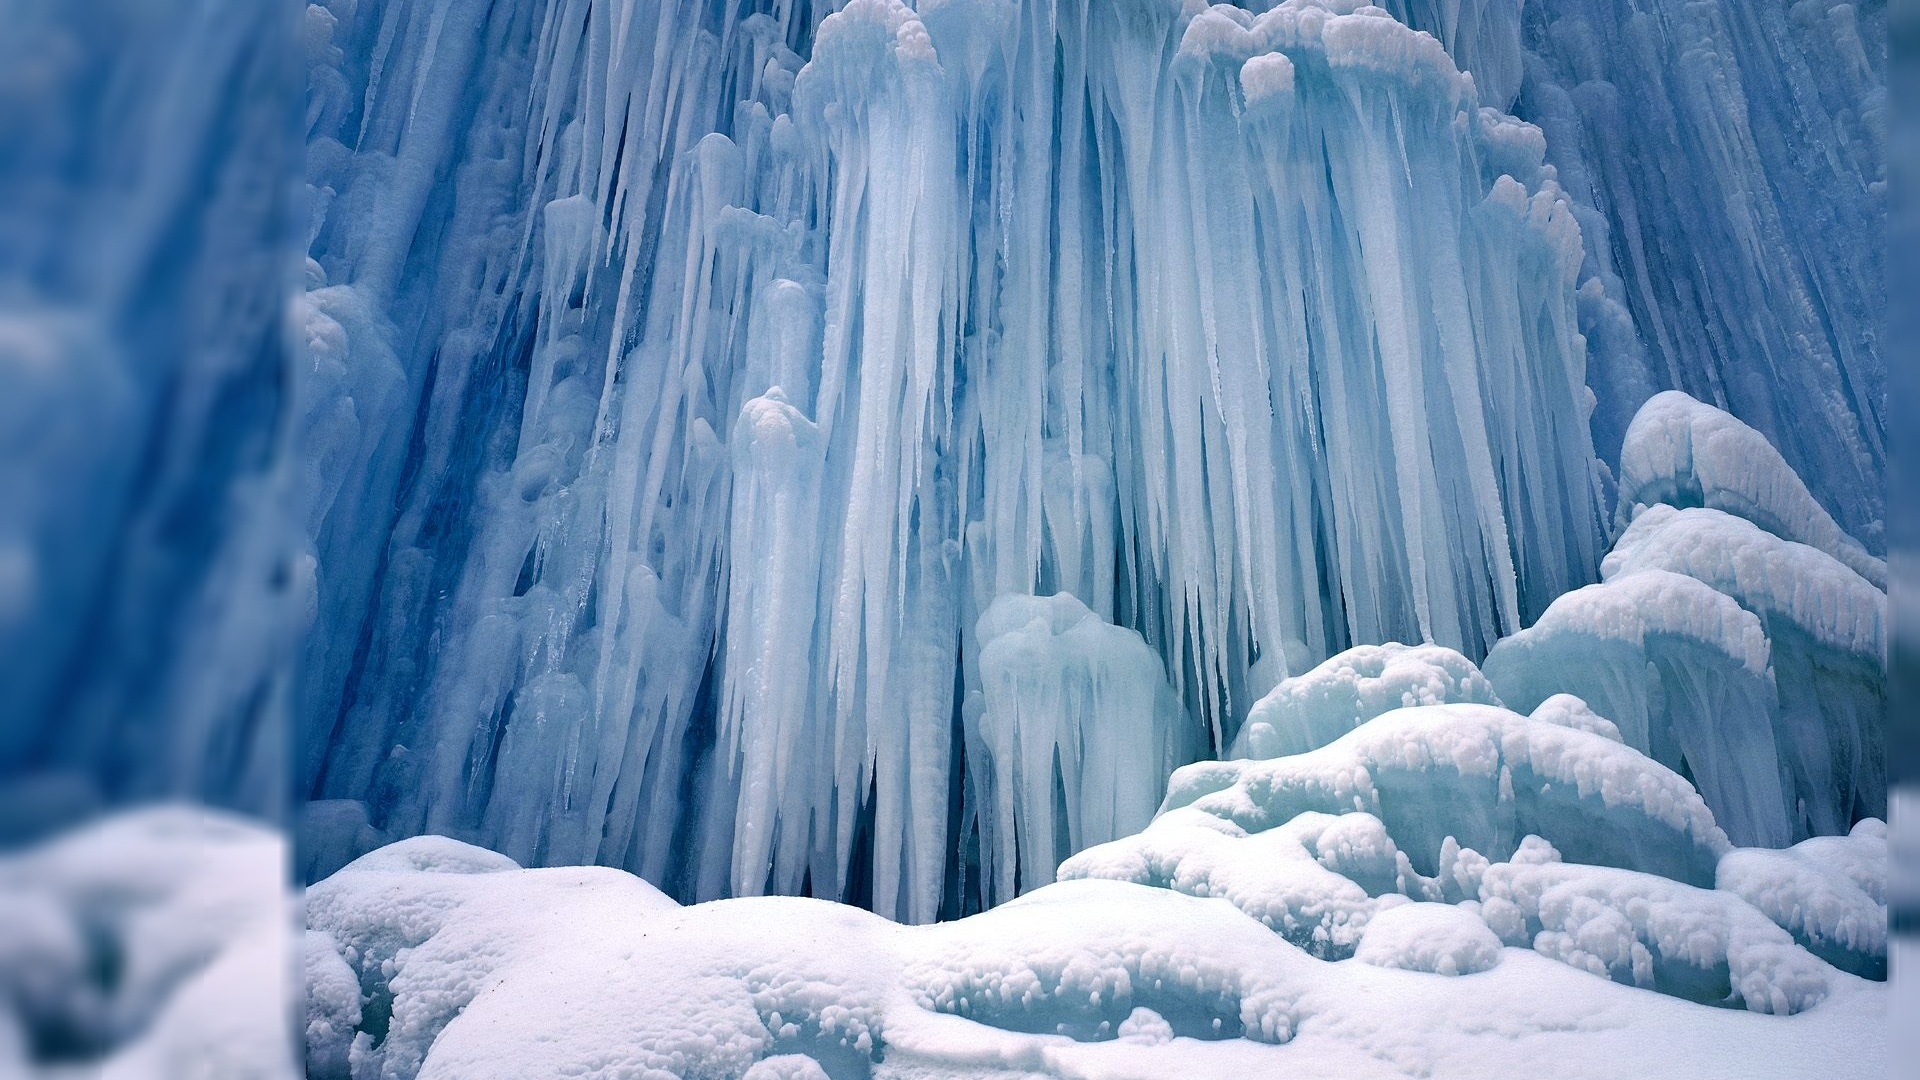 icicles wallpaper - photo #12